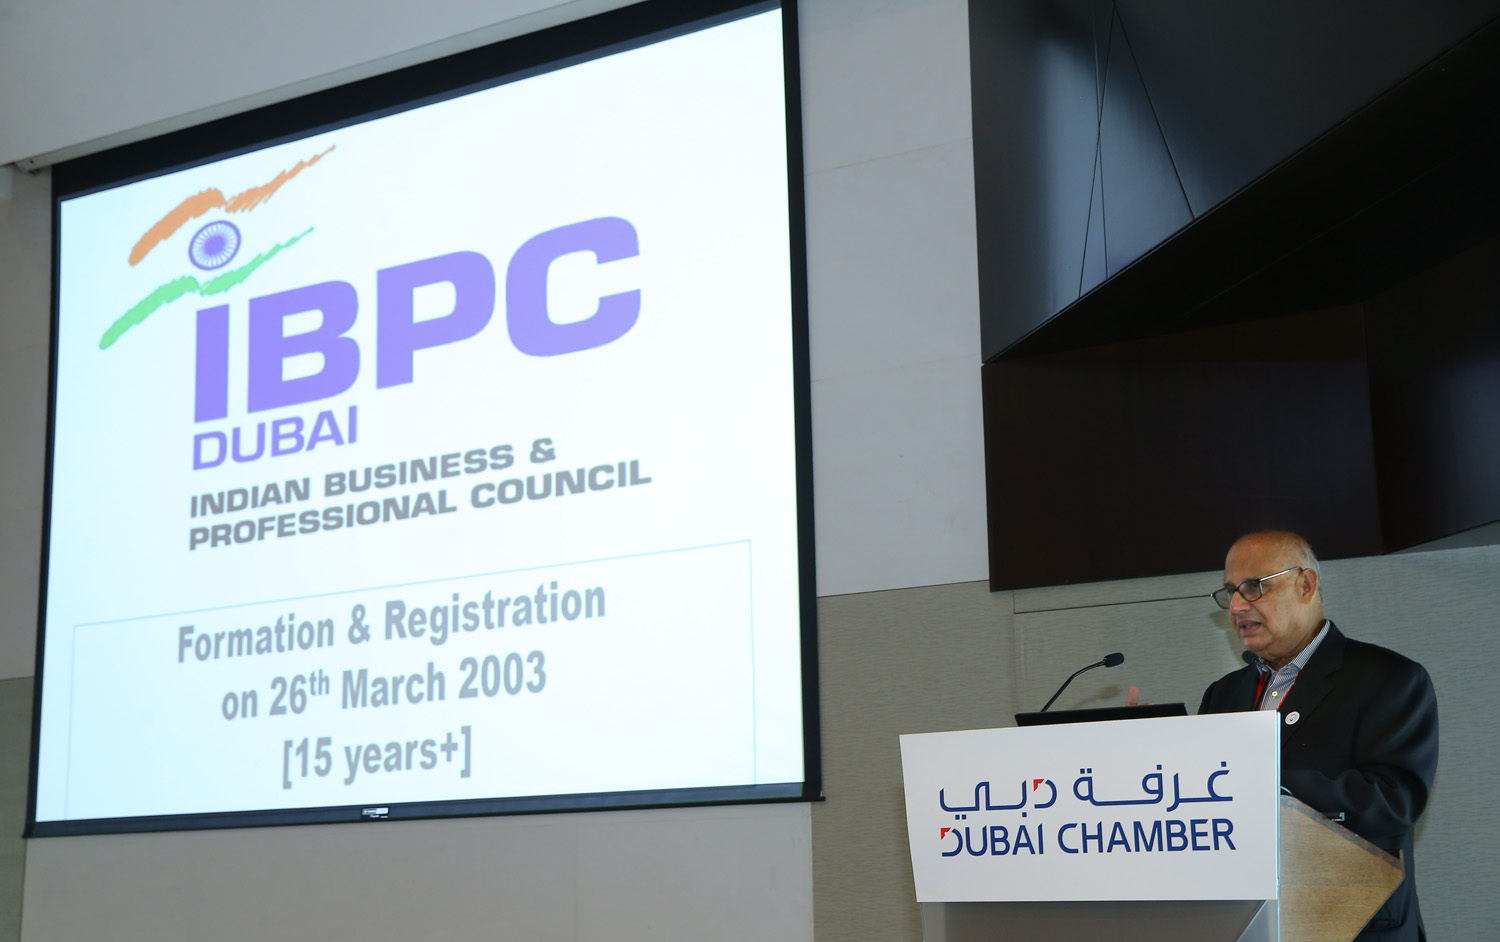 indian business and professional council in dubai highlights efforts to strengthen uae-india ties2